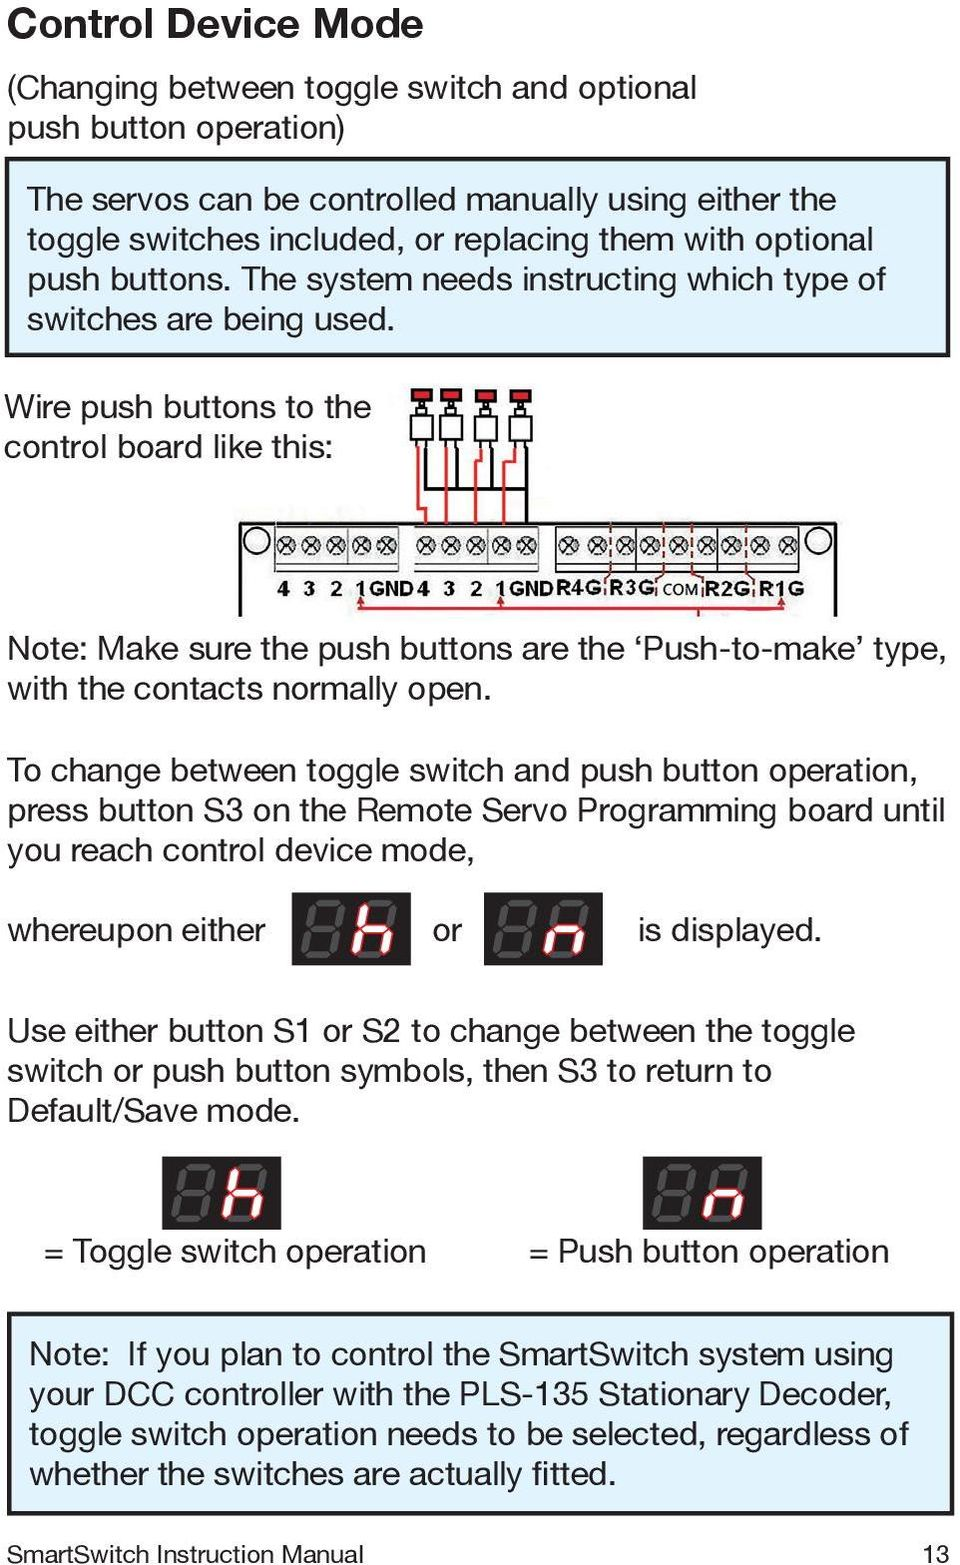 Instruction Manual This Covers The Use Of Smartswitch Servo Tortoise Switch Machine Wiring Diagram On Push Switches 13 Wire Buttons To Control Board Like Note Make Sure